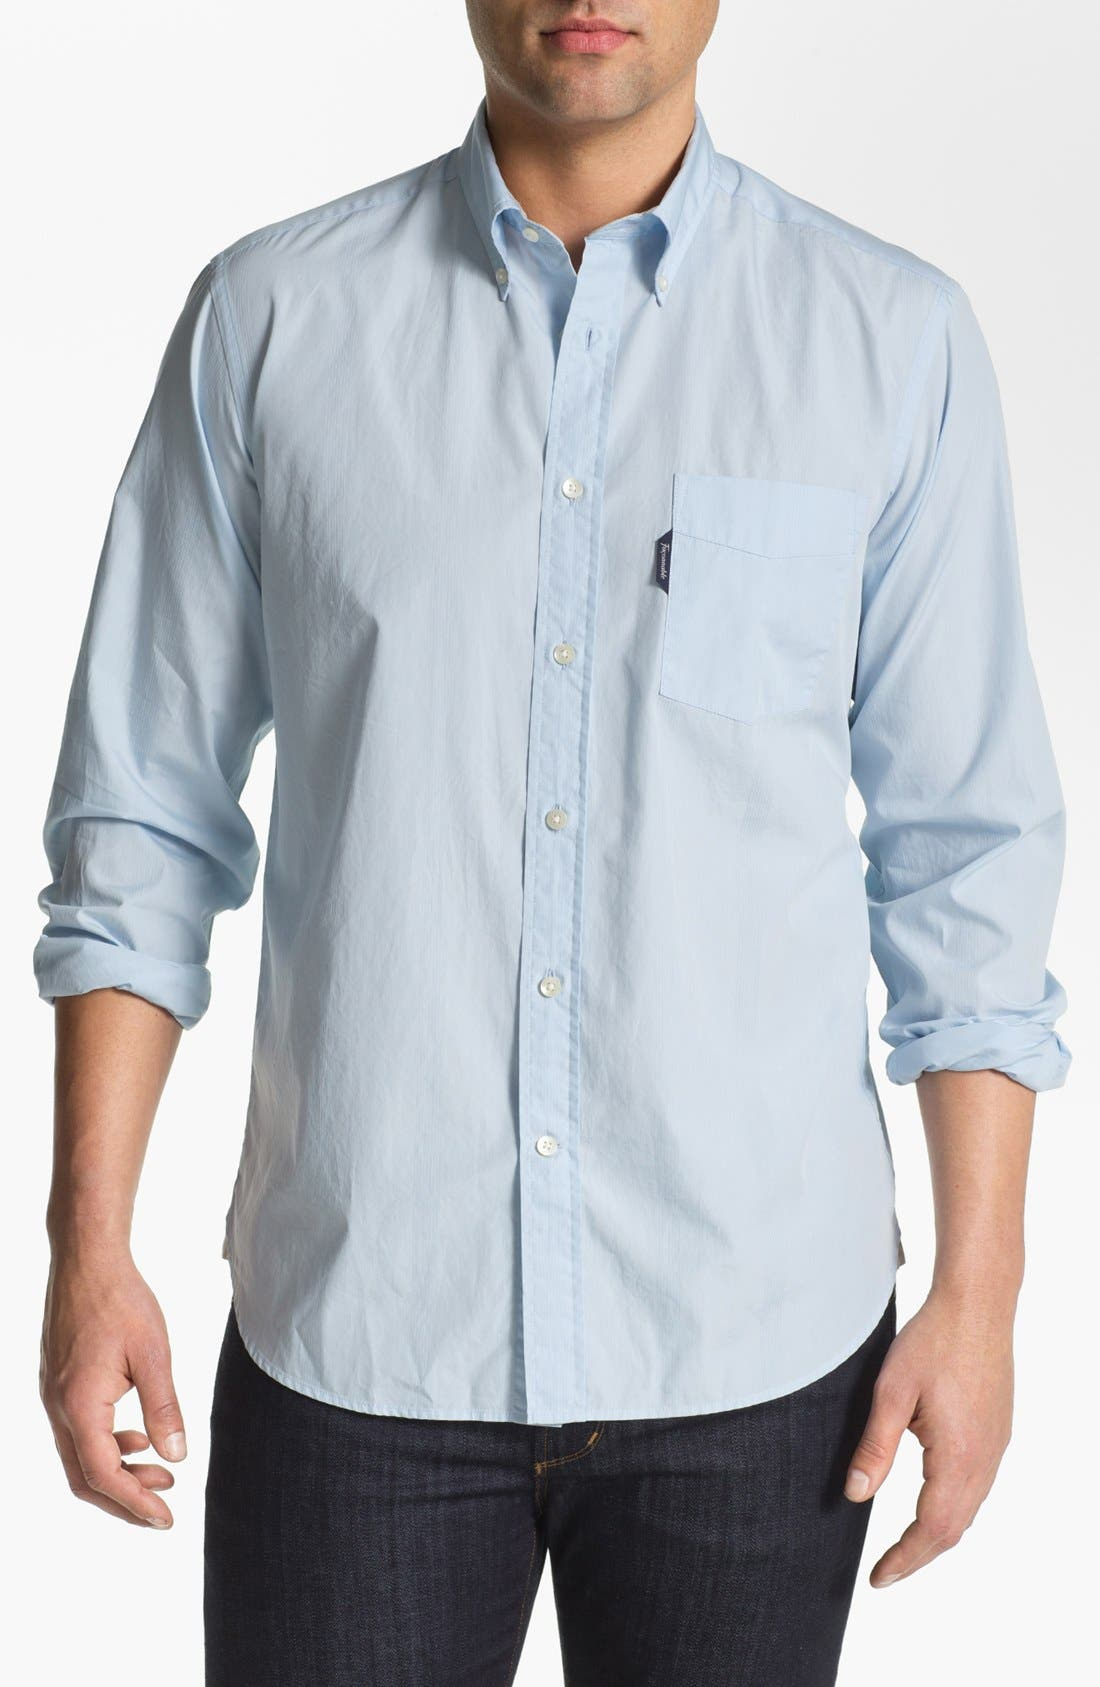 Alternate Image 1 Selected - Façonnable Club Fit Cambric Sport Shirt